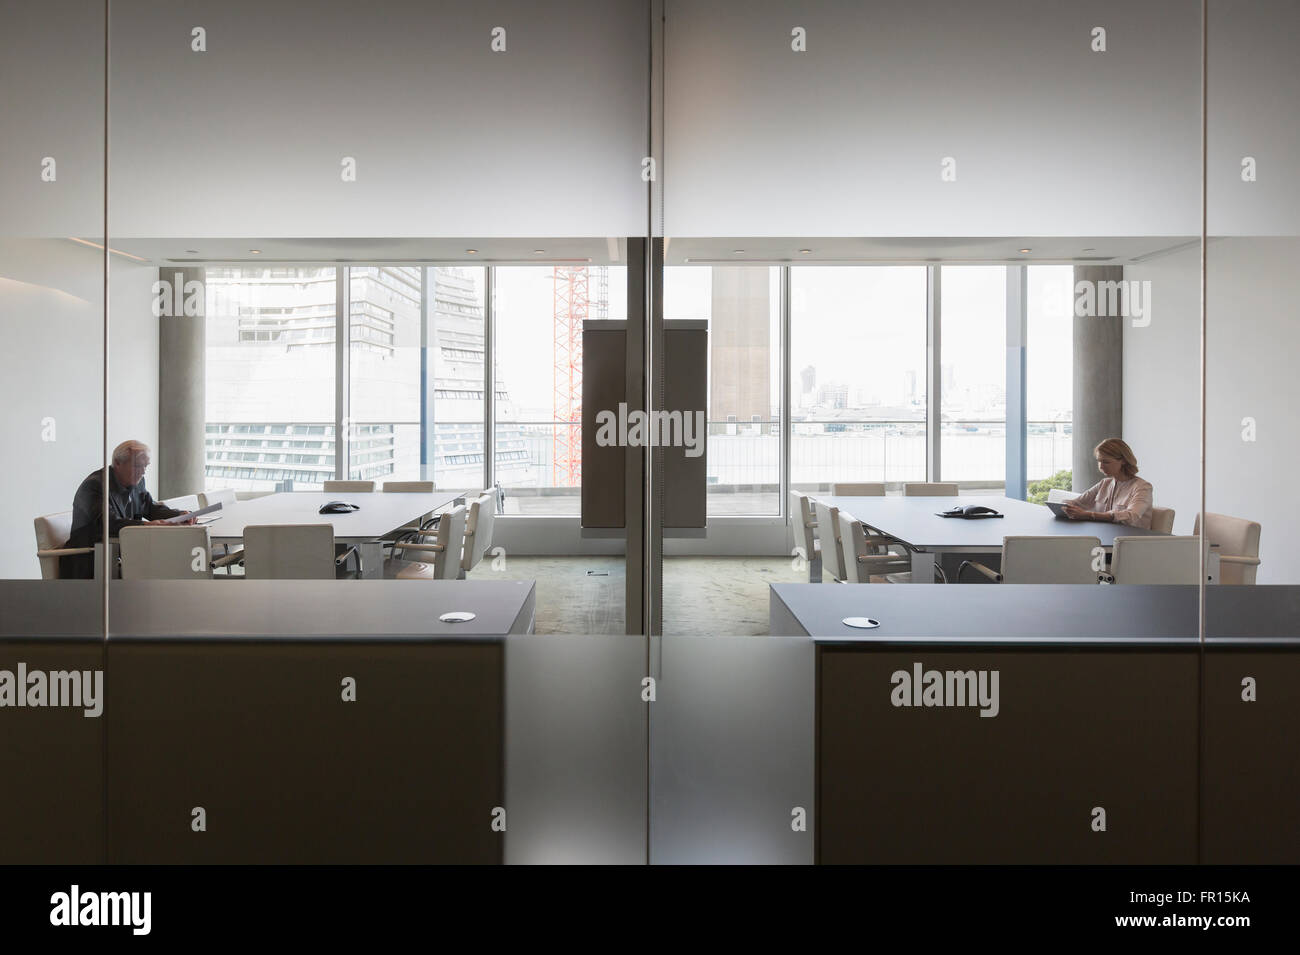 Business people working in modern symmetrical conference rooms - Stock Image